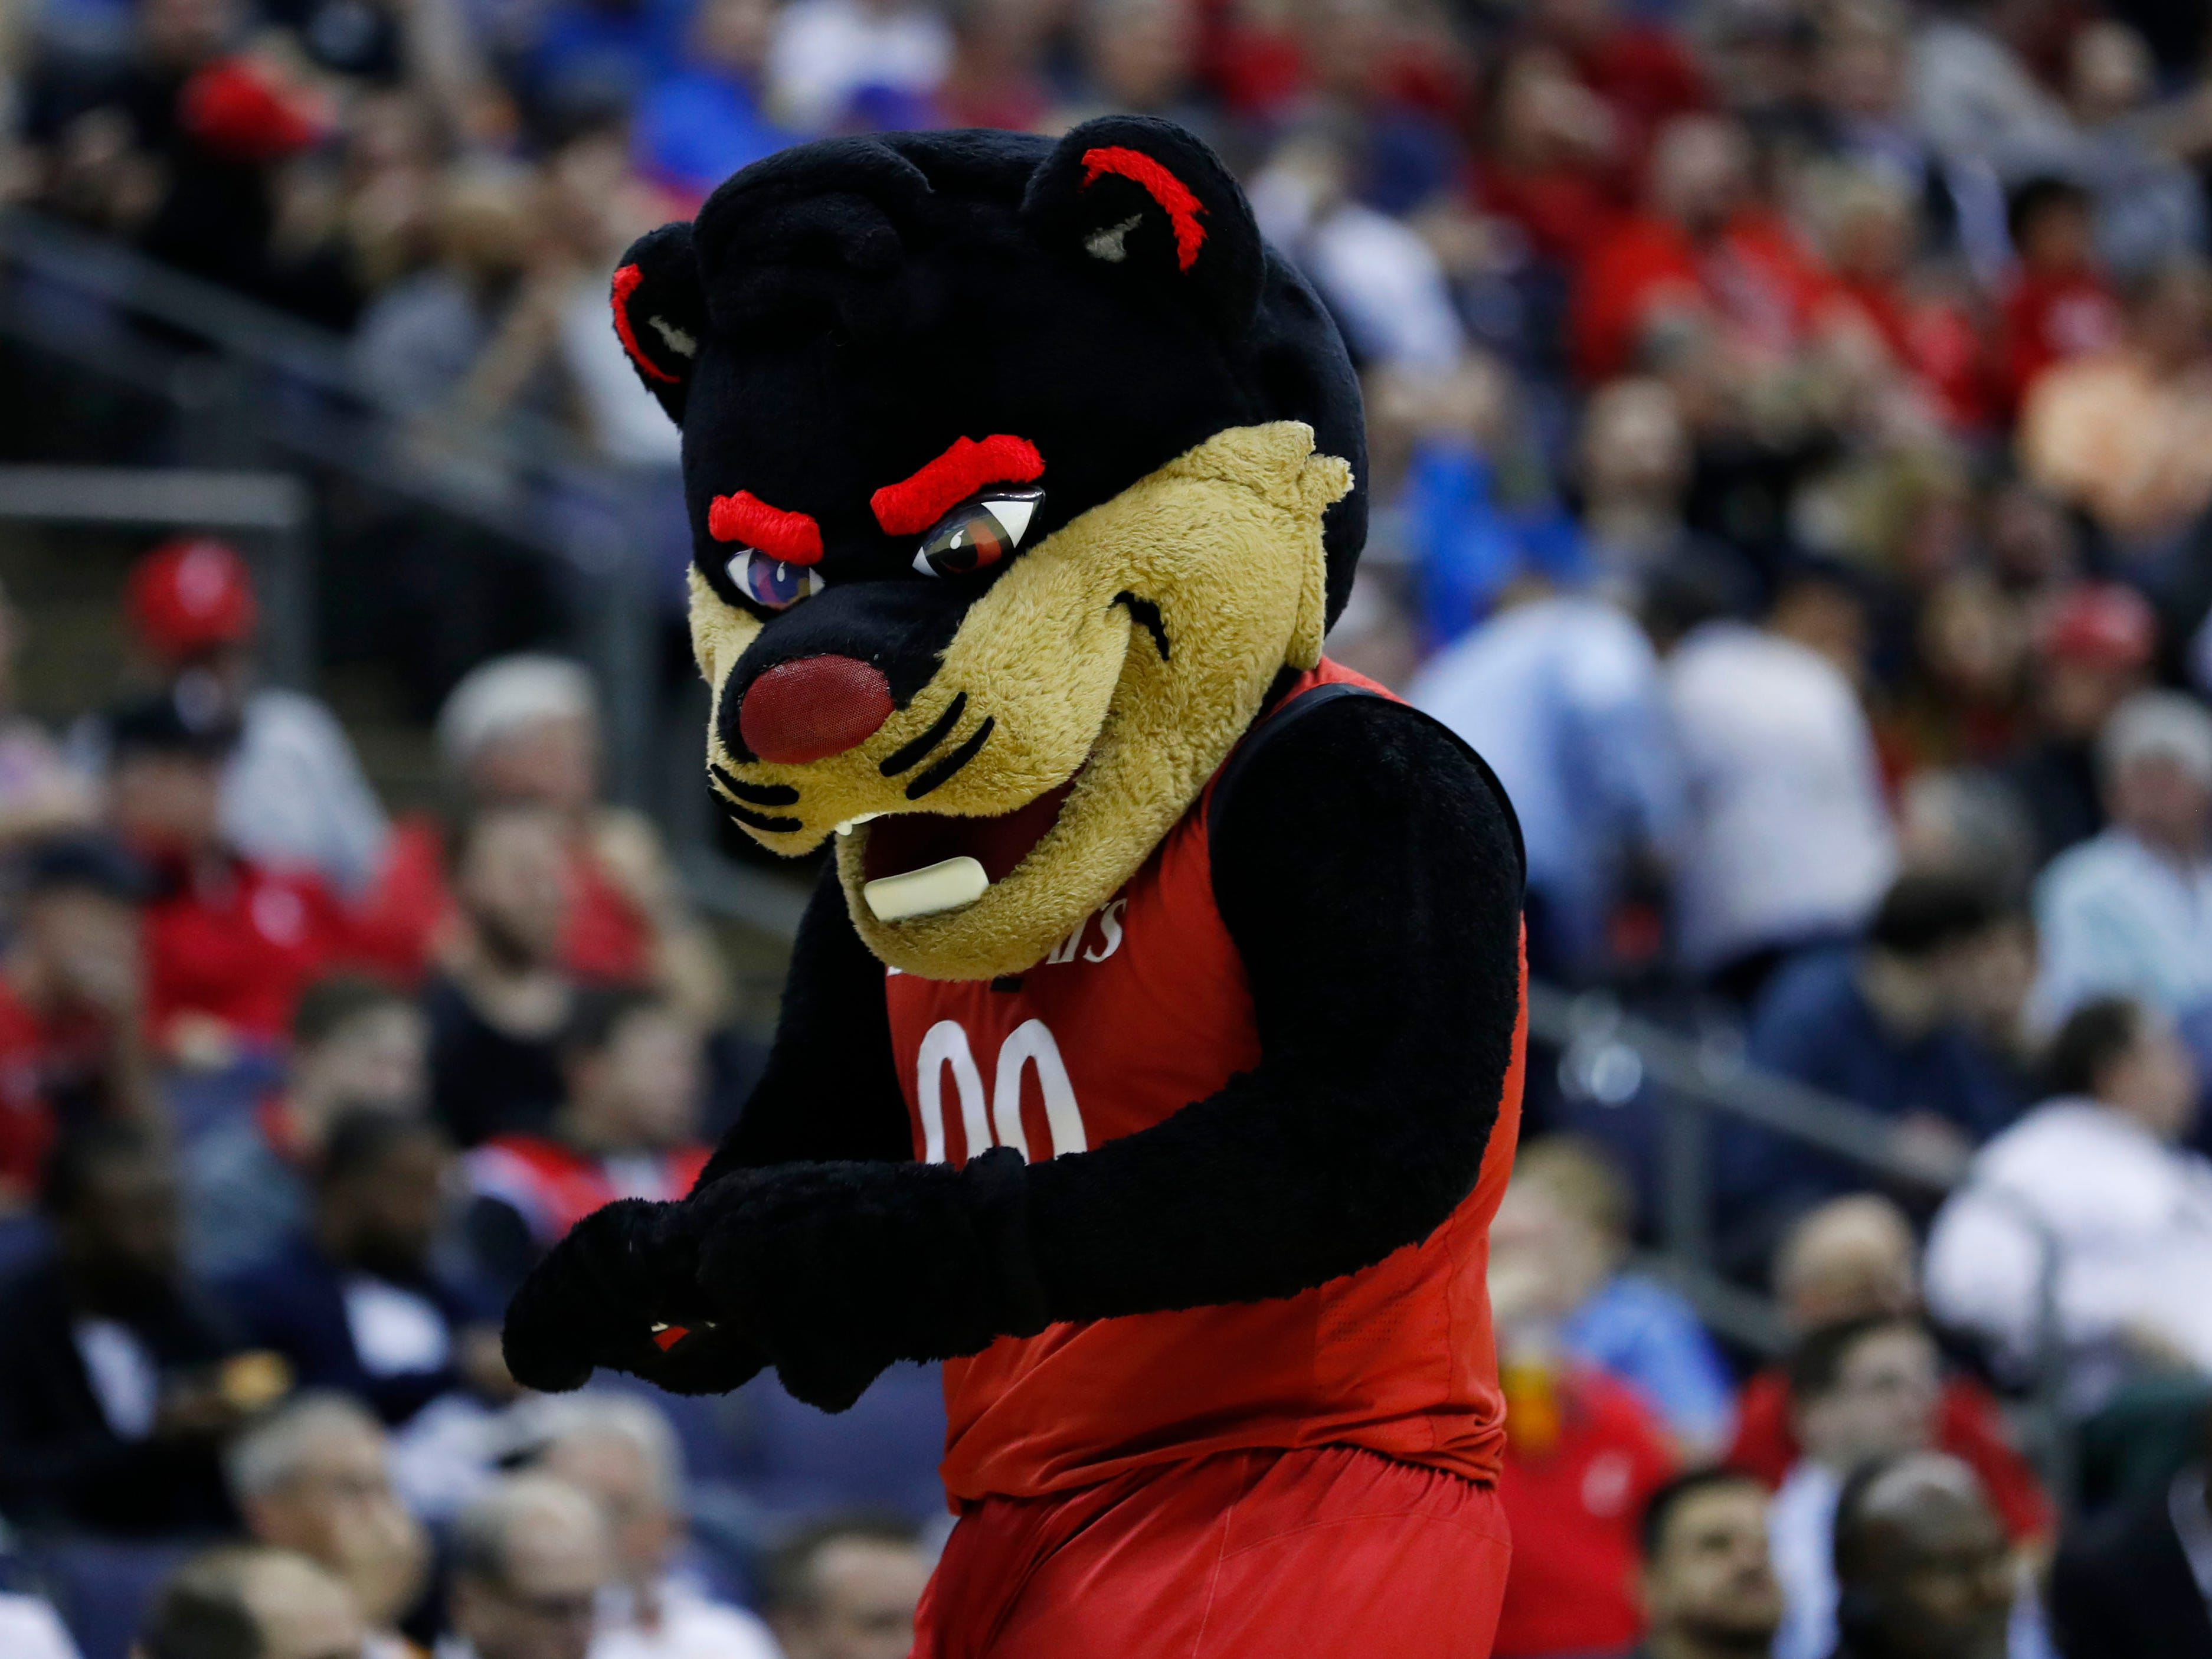 First round: The Cincinnati Bearcats mascot during the game against the Iowa Hawkeyes.